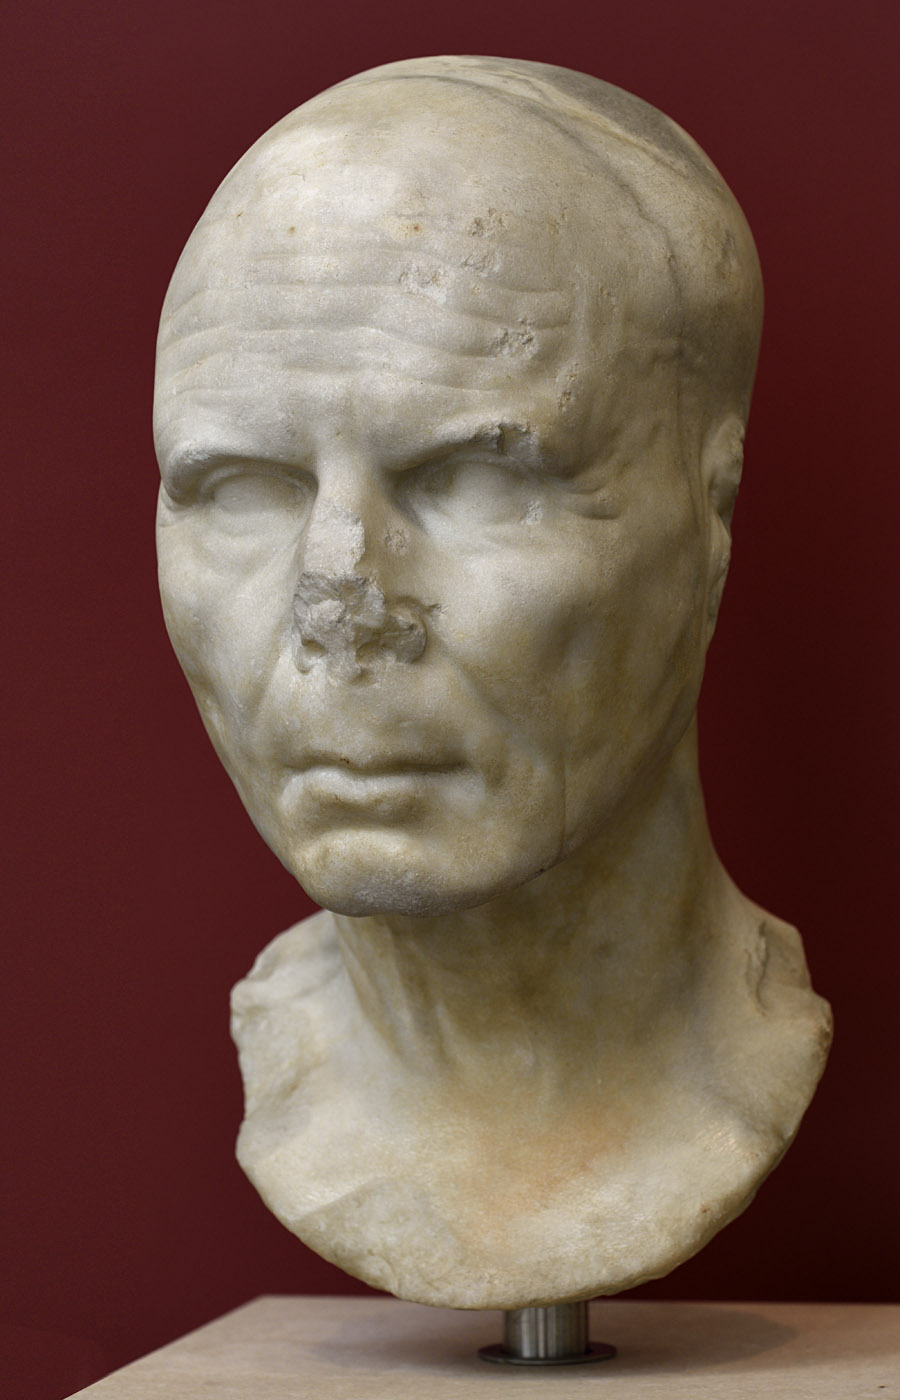 Portrait of aт unknown man. Marble. Mid-1st century BCE. Inv. No. 126368. Rome, Roman National Museum, Palazzo Massimo alle Terme